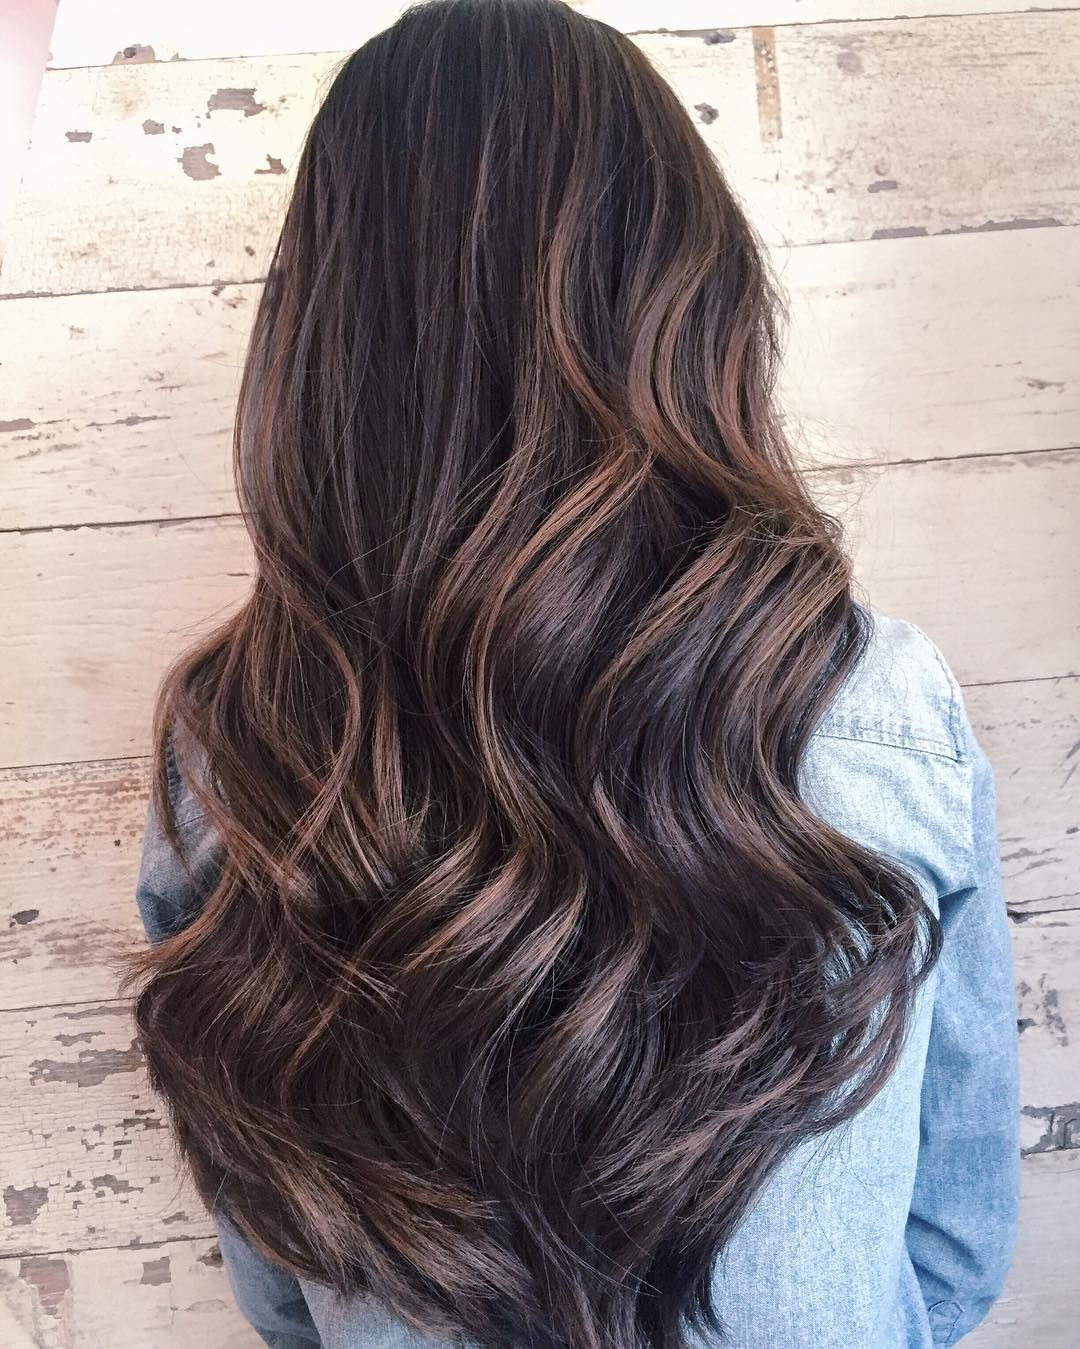 """new season, new 💁🏻 went lighter both in weight & shade (Nick fondly calls this """"milk tea brown"""" ☕☕️☕️️) thanks to Graziella @saloncapri. I love subtle highlights that can grow out with natural hair as I only get mine done about twice a year 🙈 #balayage #happyfriday #friyay"""